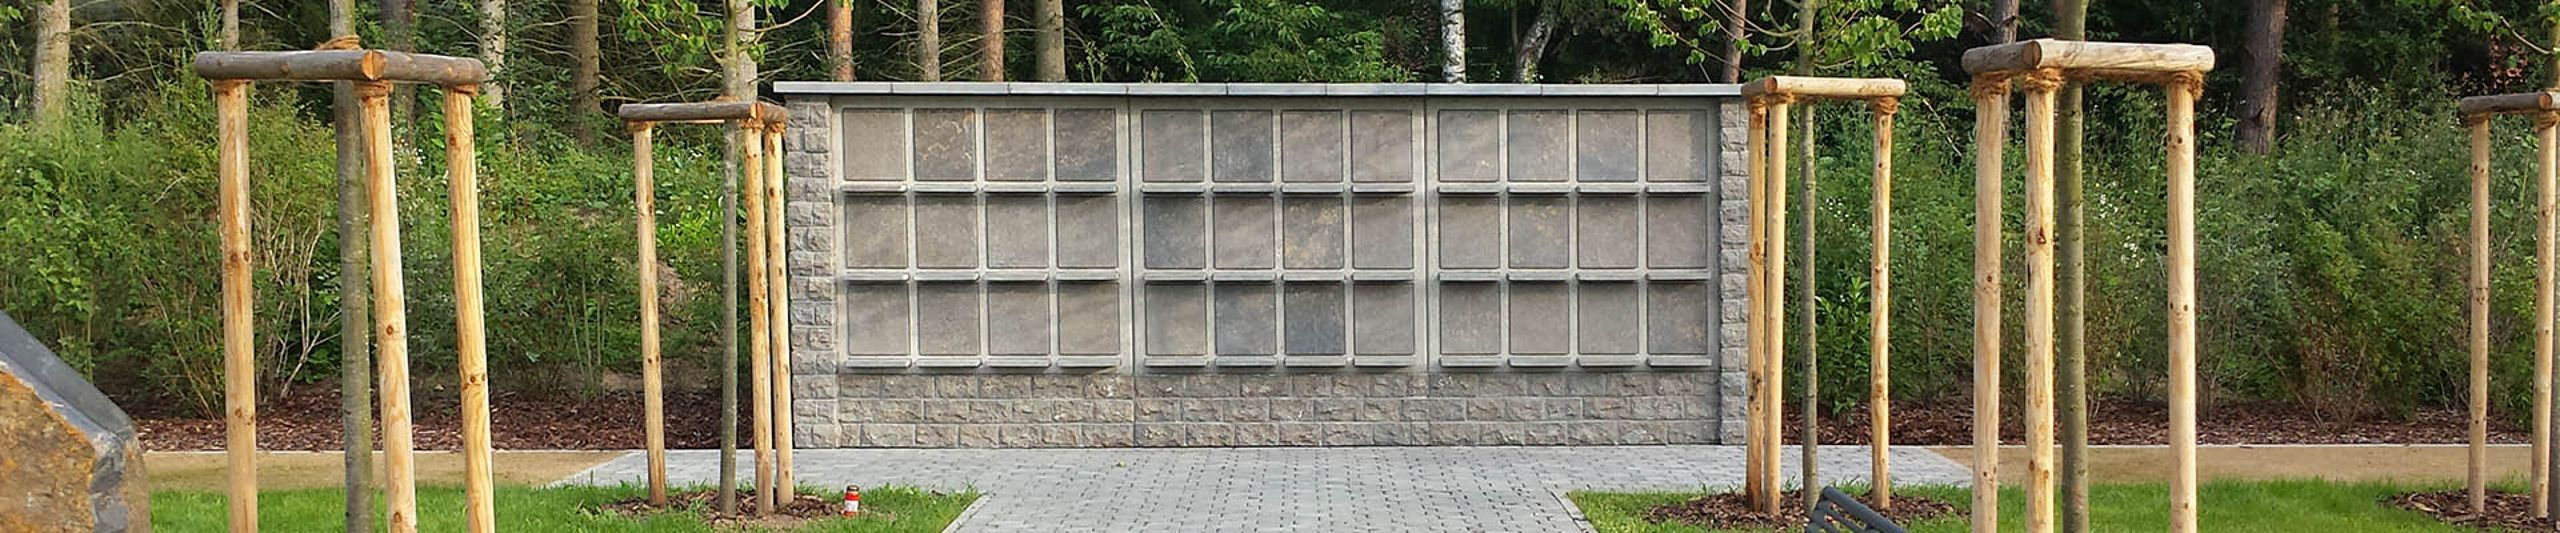 Urn wall systems for cemeteries